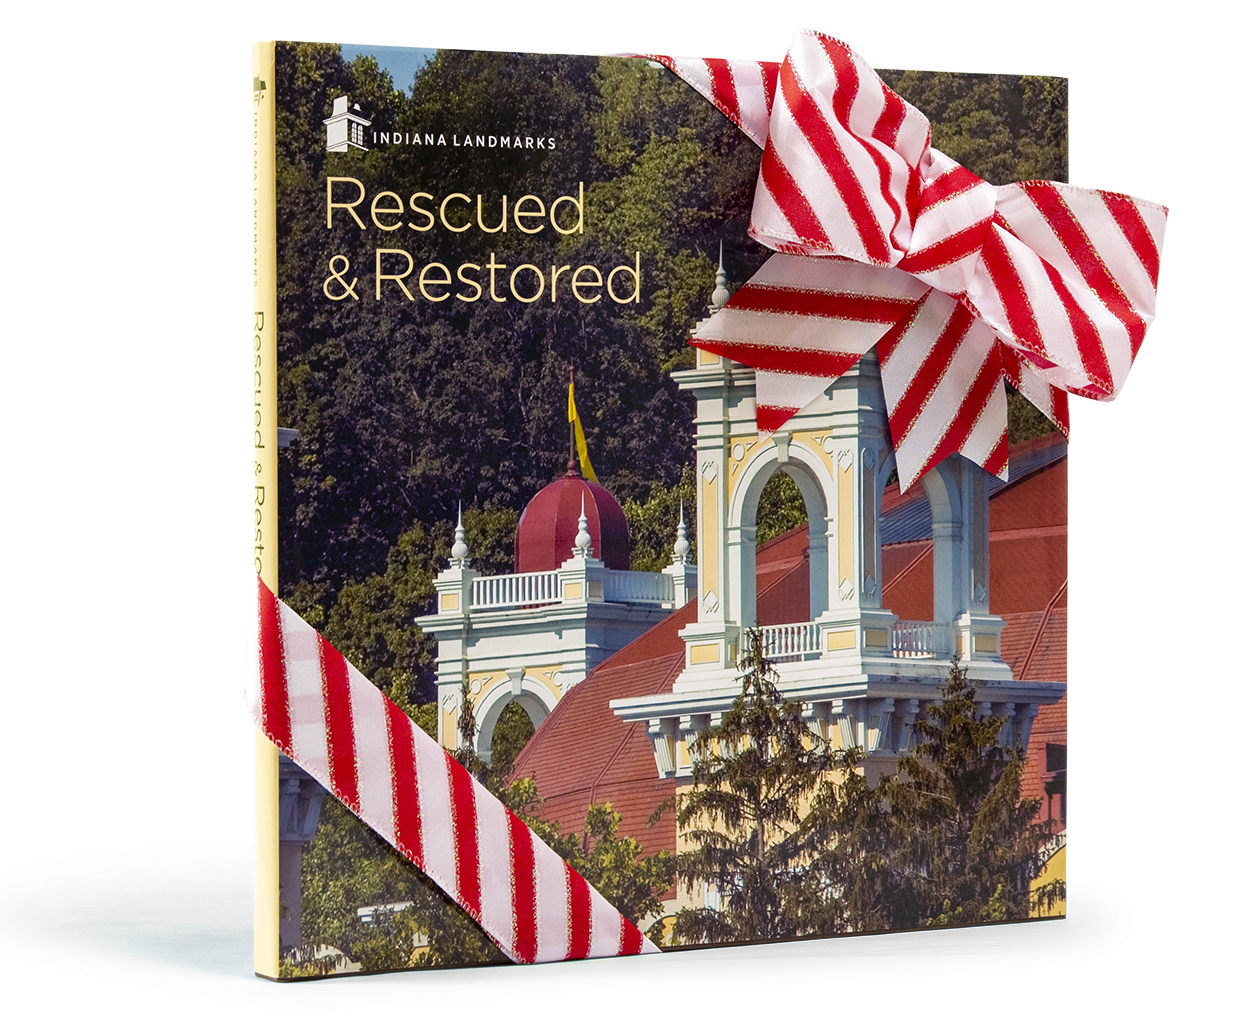 Indiana Landmarks Rescued and Restored Holiday Gift